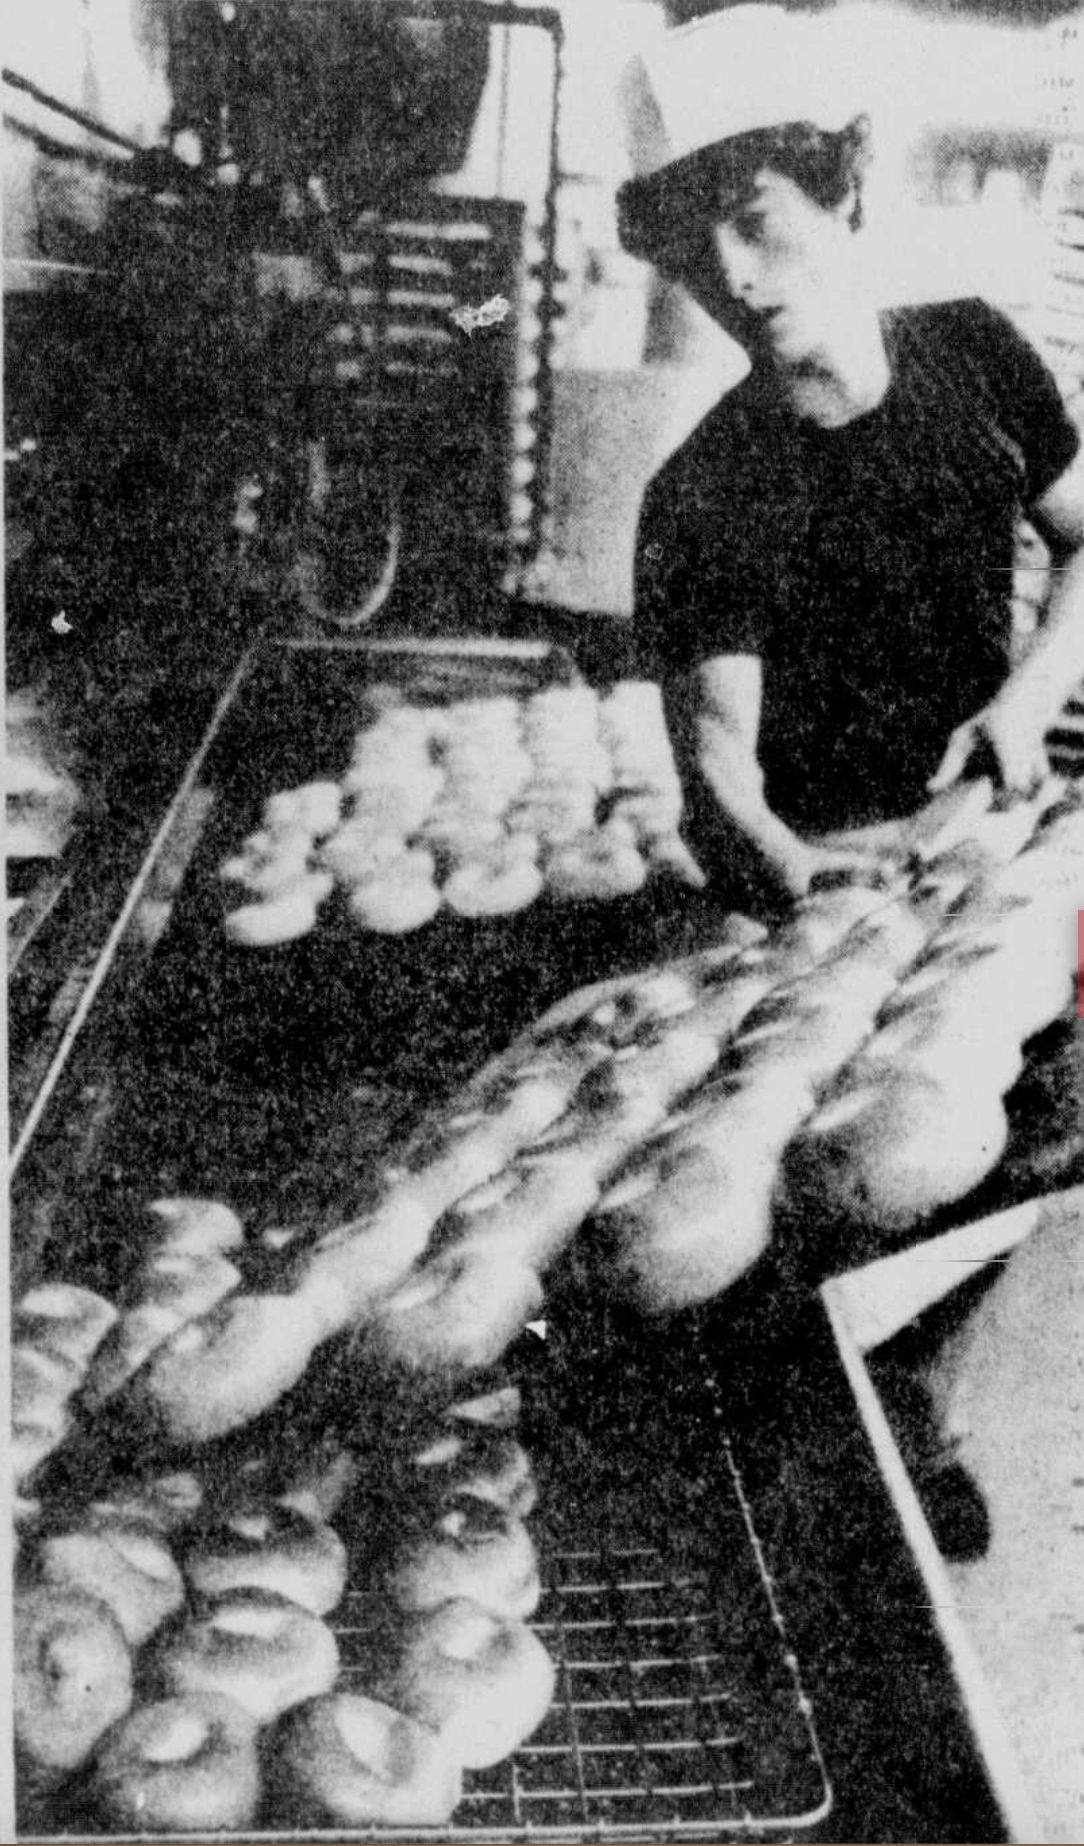 Donald Morgan at Eagerman's Bakery